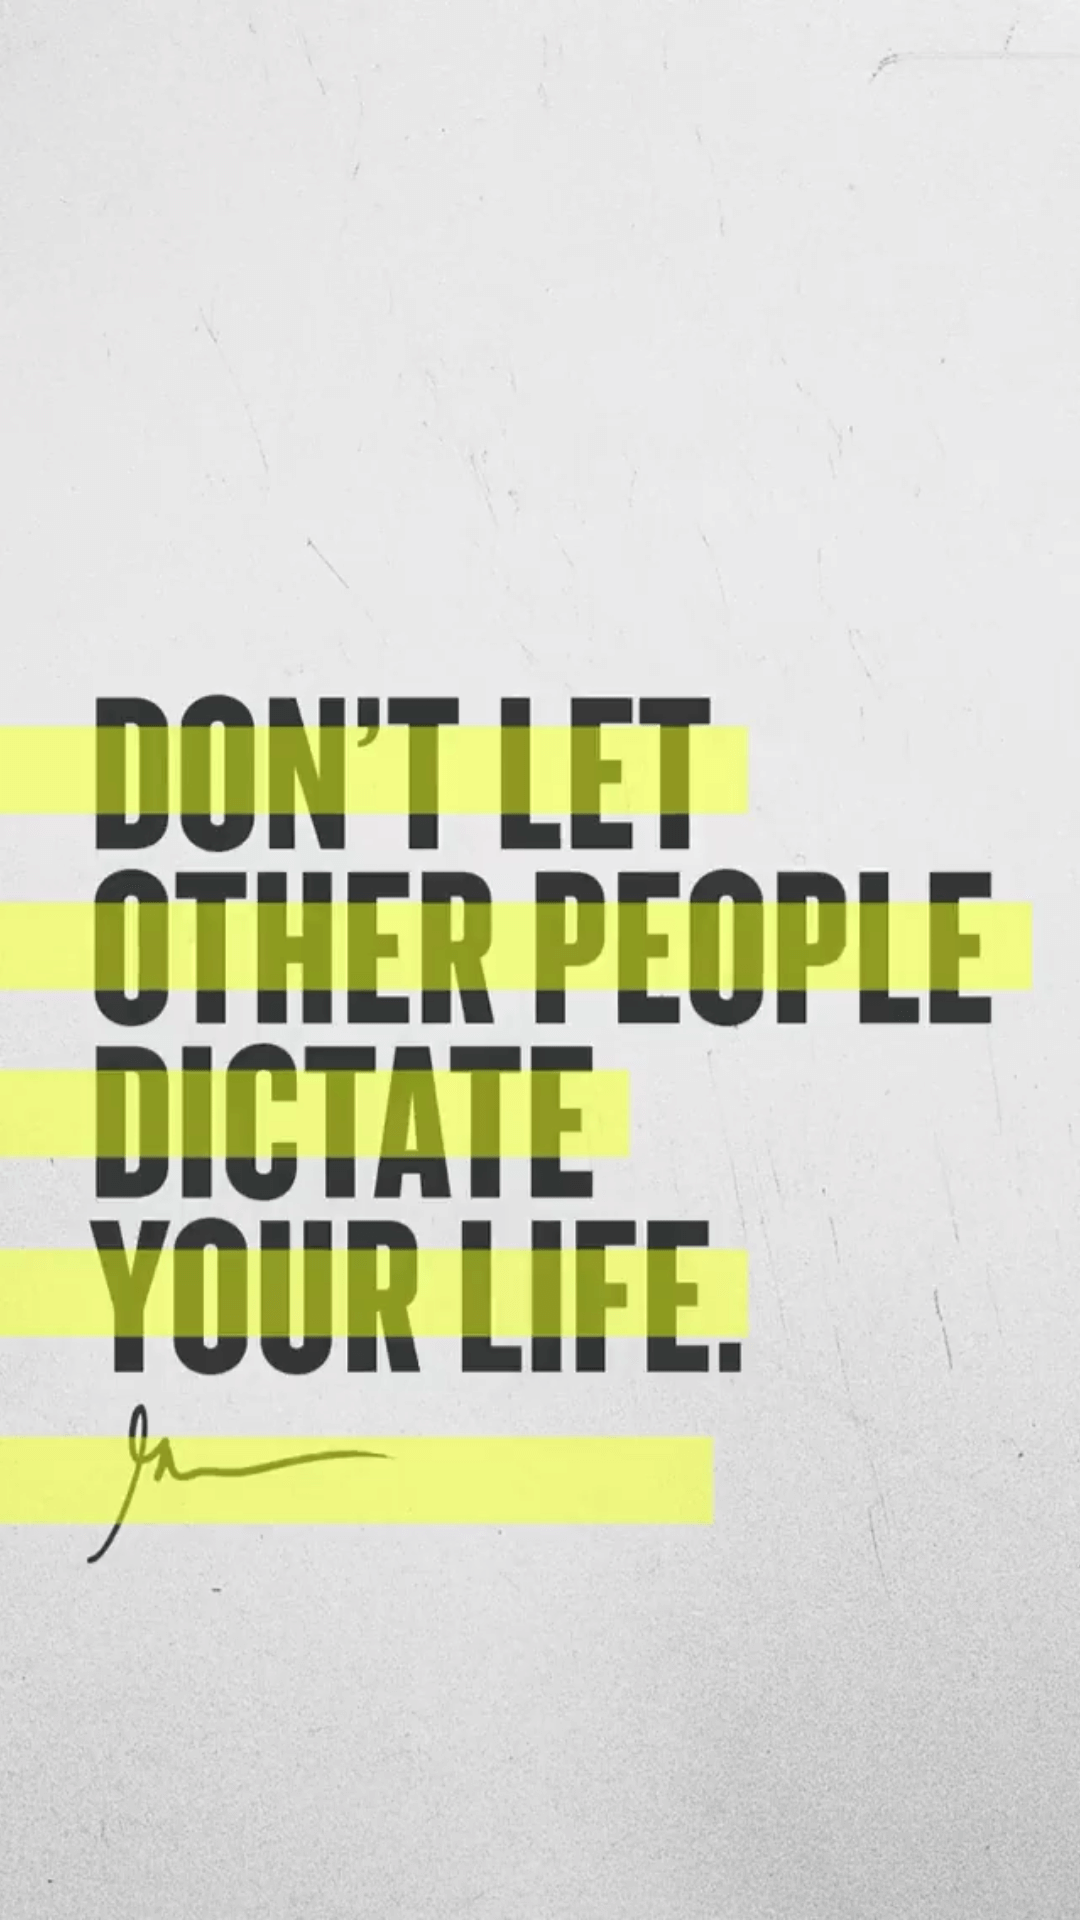 Don't Let Other People Dictate Your Life Garyveewallpapers.com